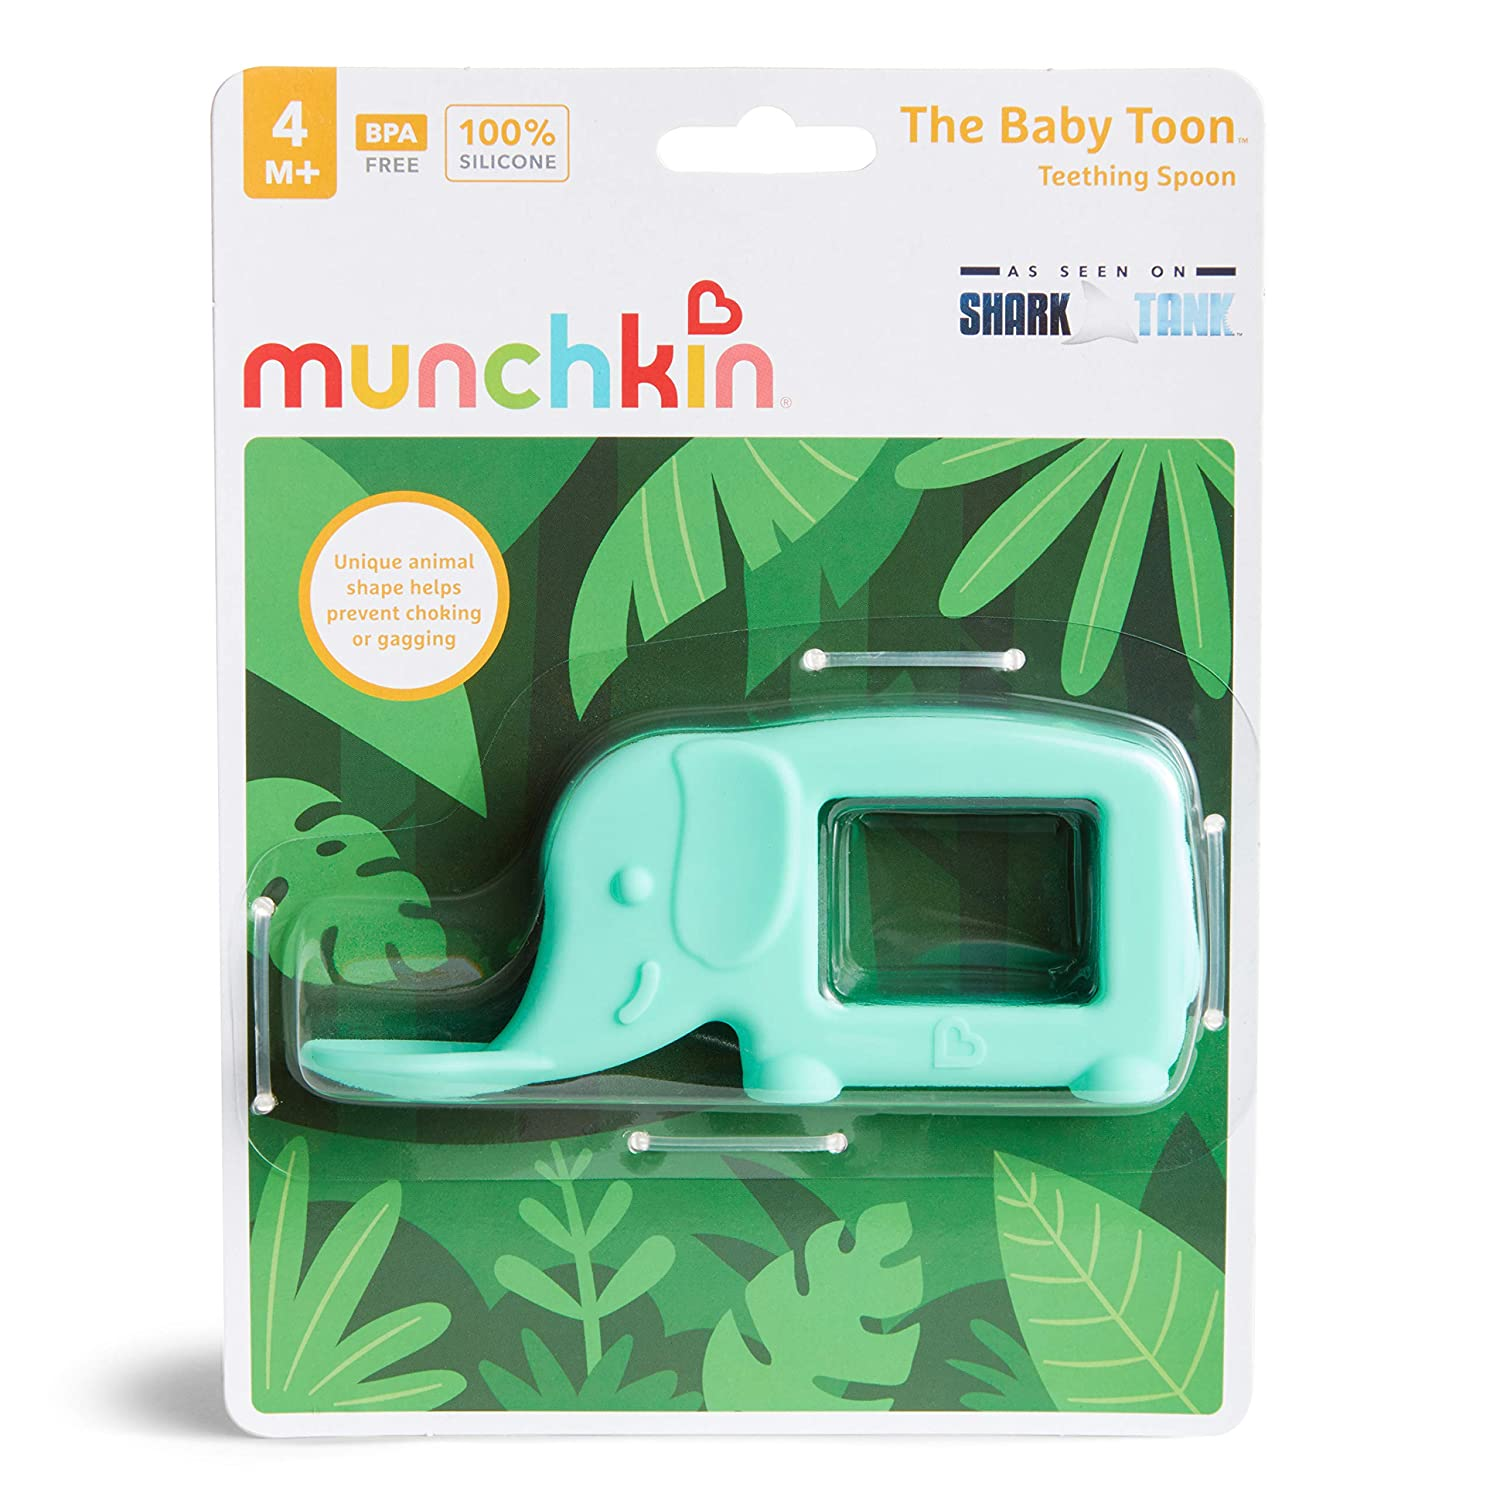 Koala As Seen On Shark Tank Munchkin The Baby Toon Silicone Teether Spoon